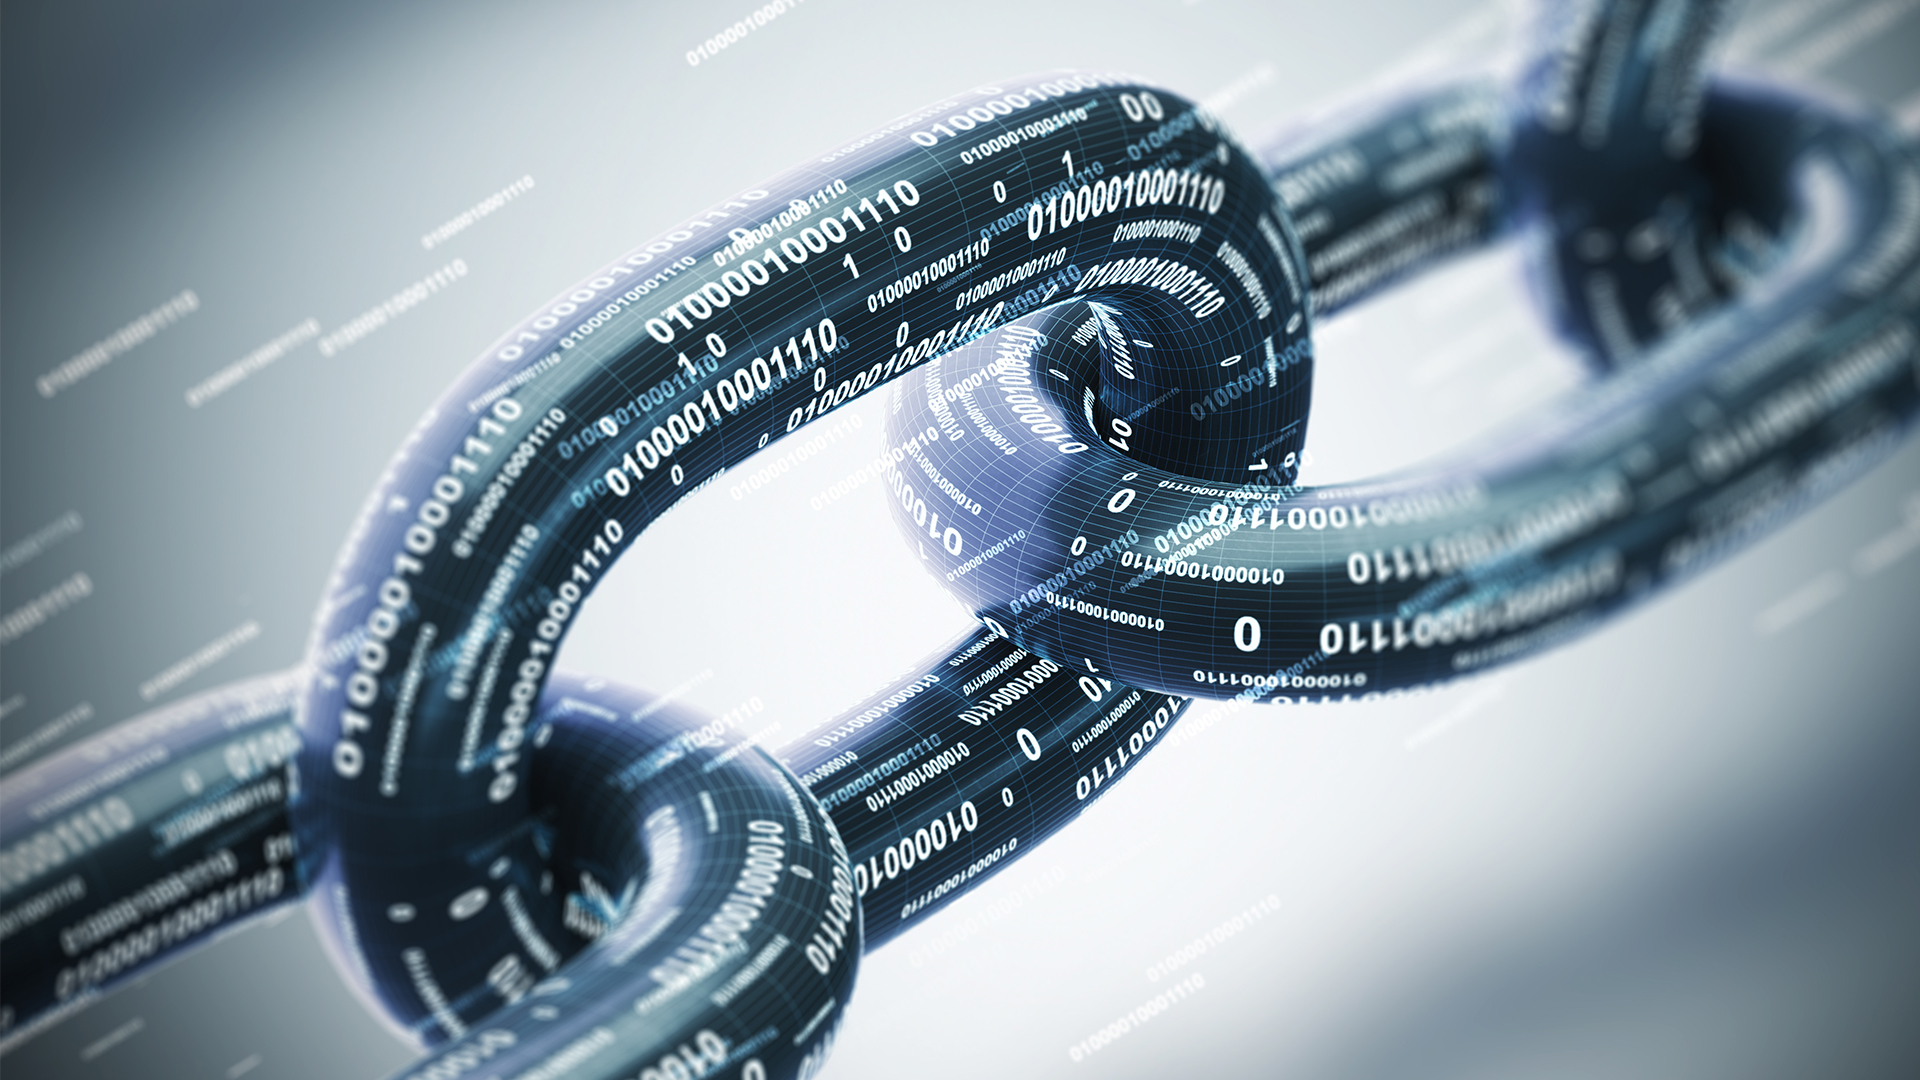 data-protection-cybersecurity-chain